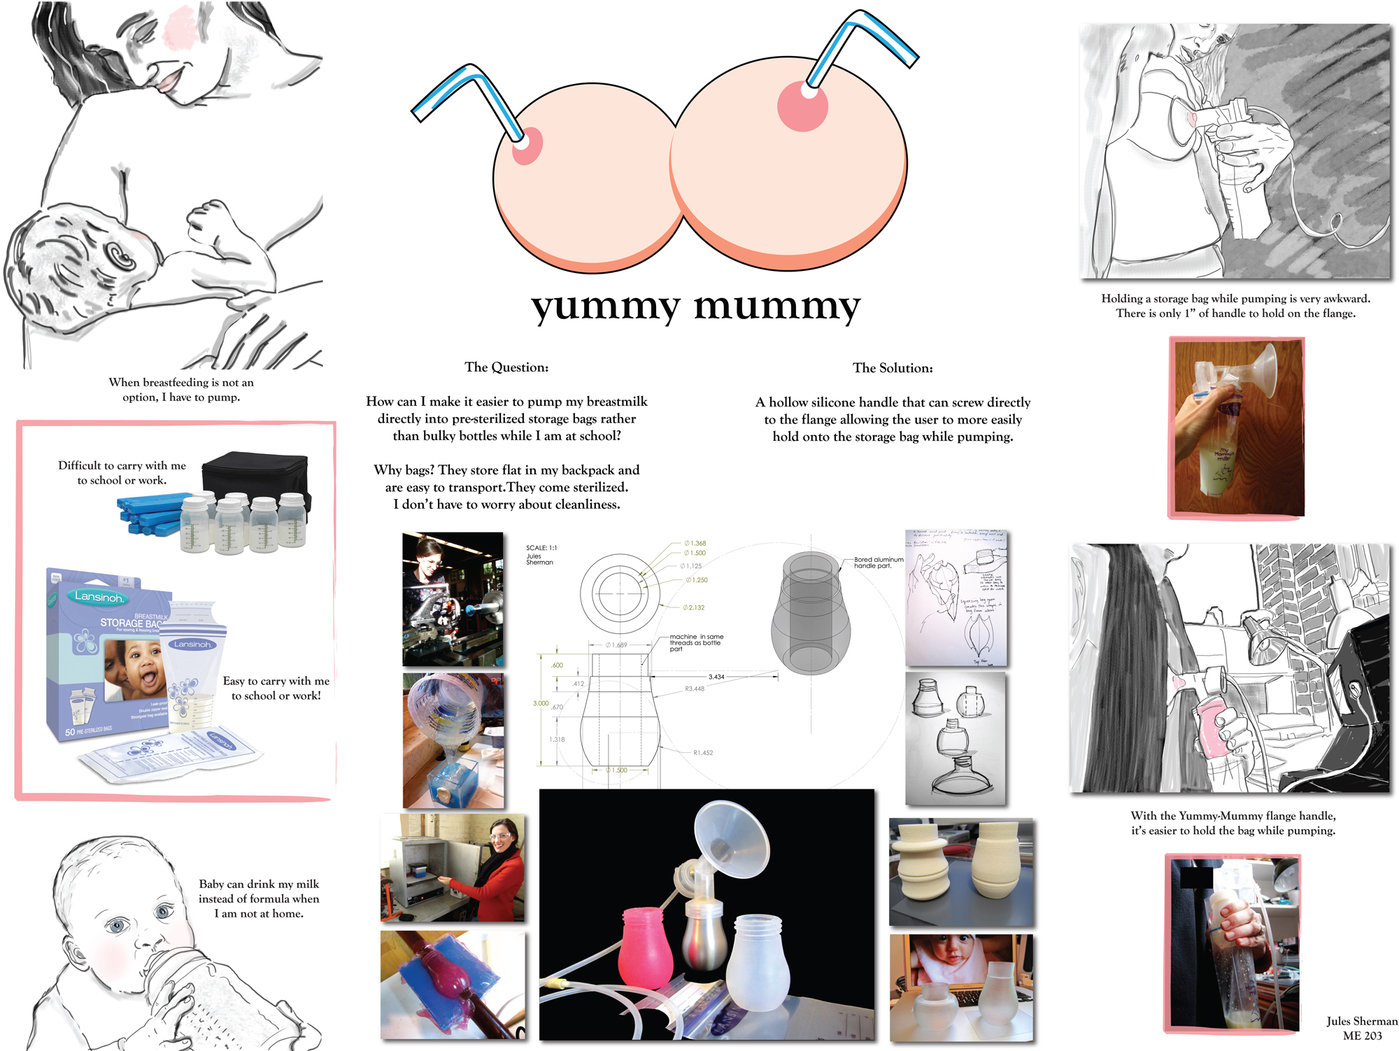 Yummy Mummy By Jules Sherman At Coroflot Com